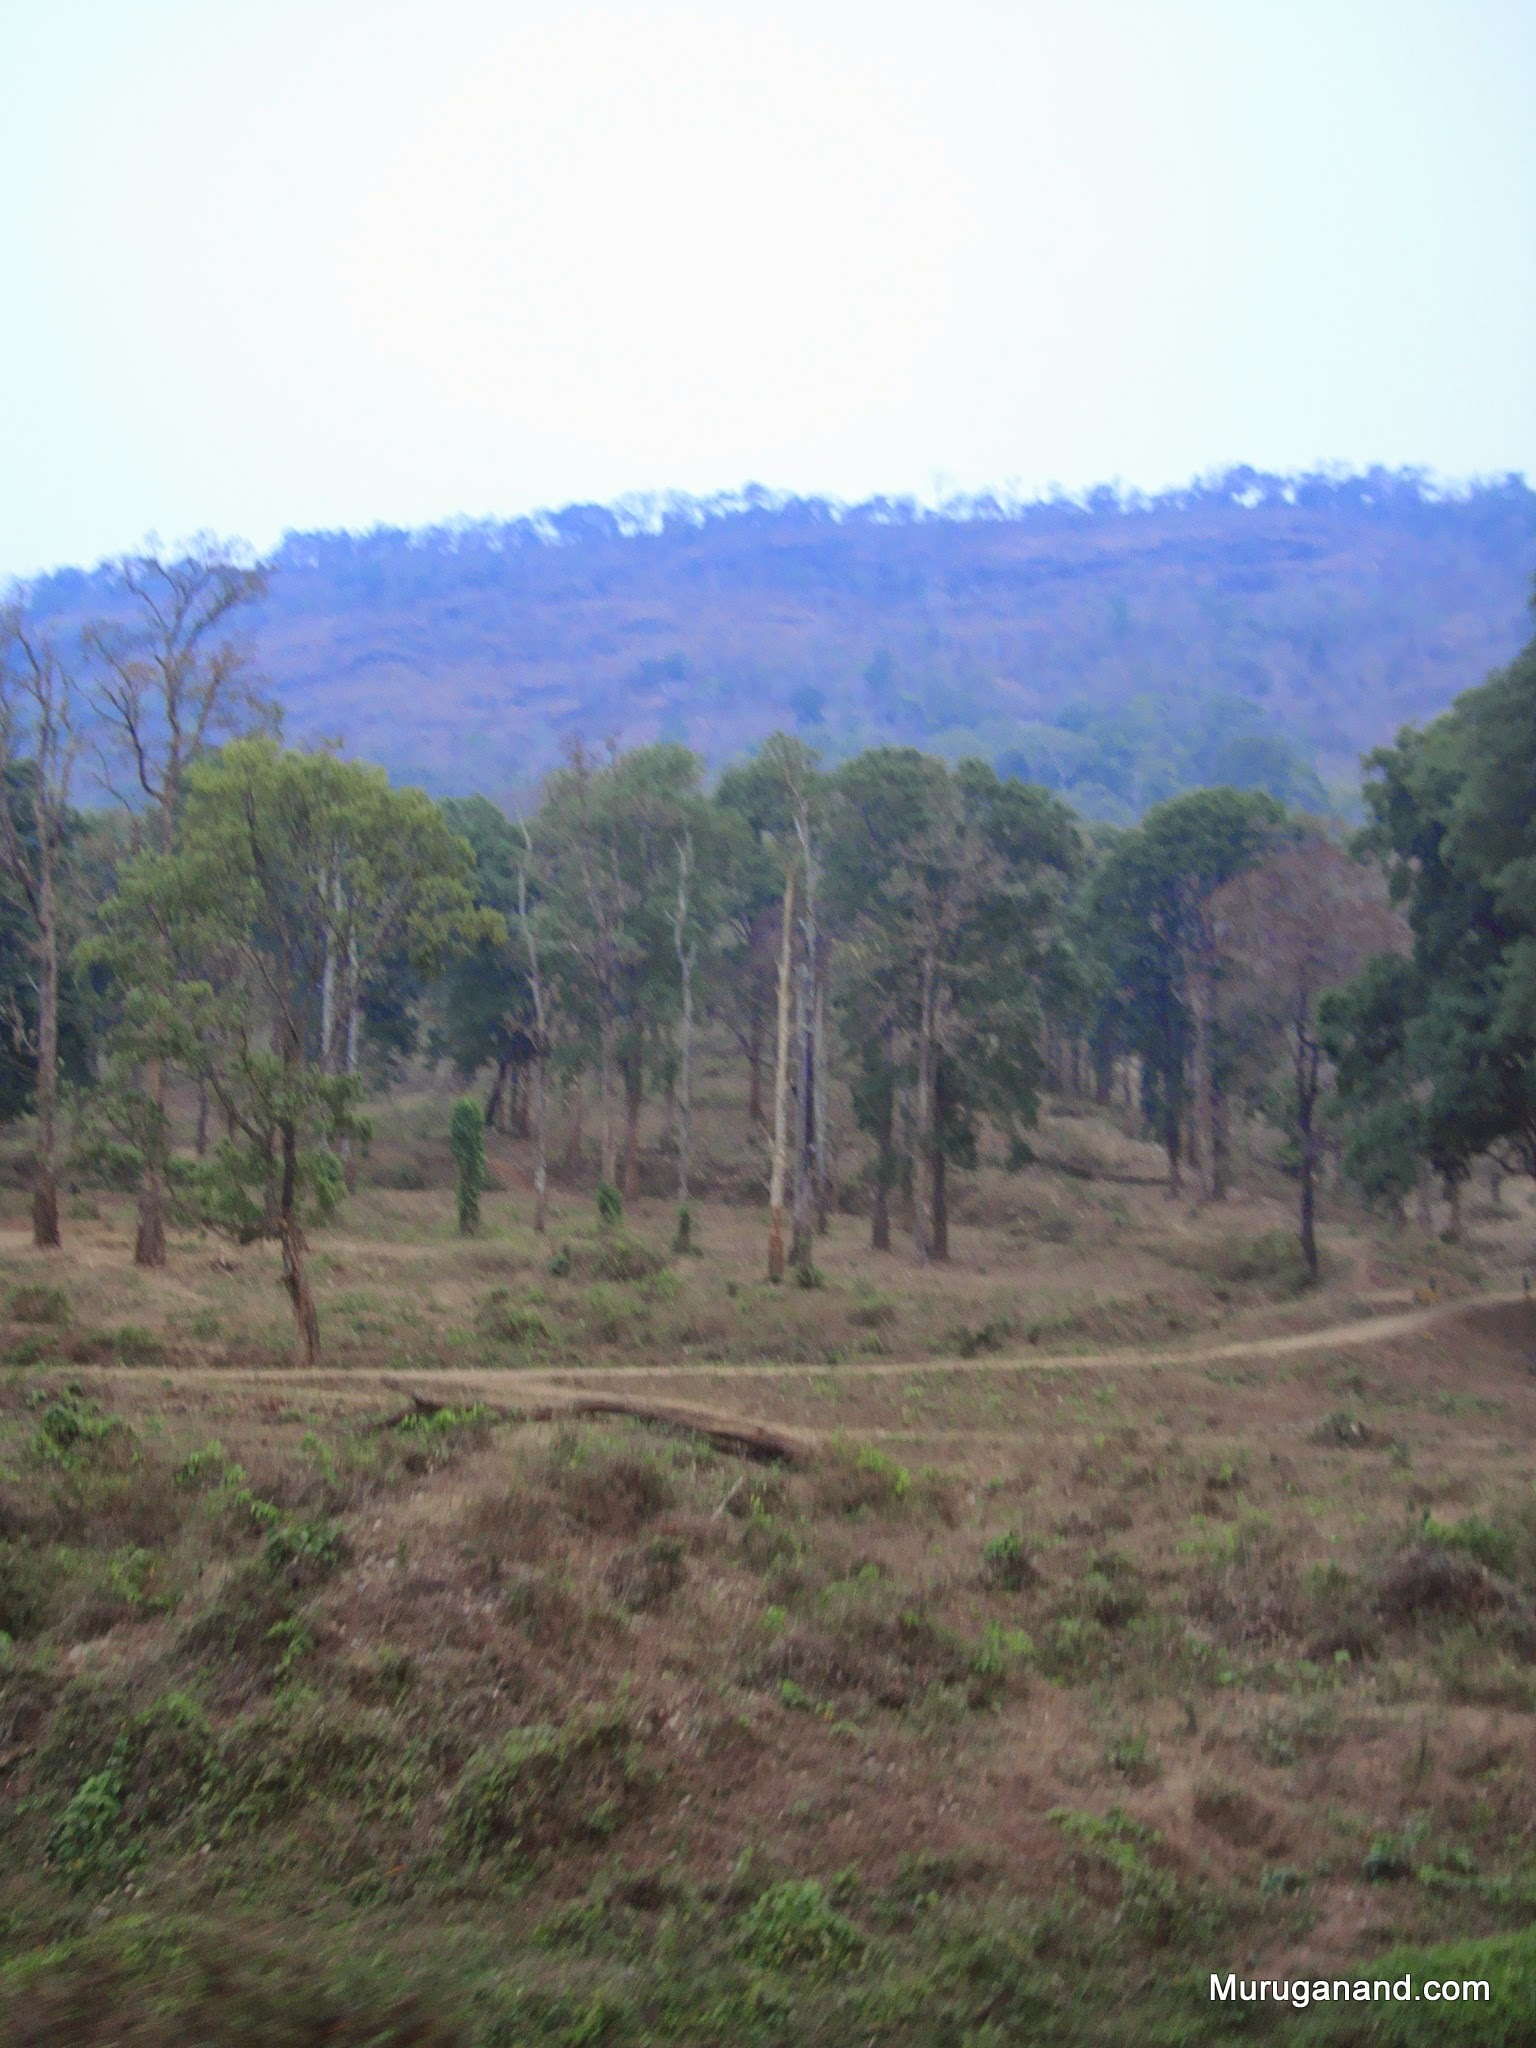 Forest atmosphere is real change of scenery for urban folks